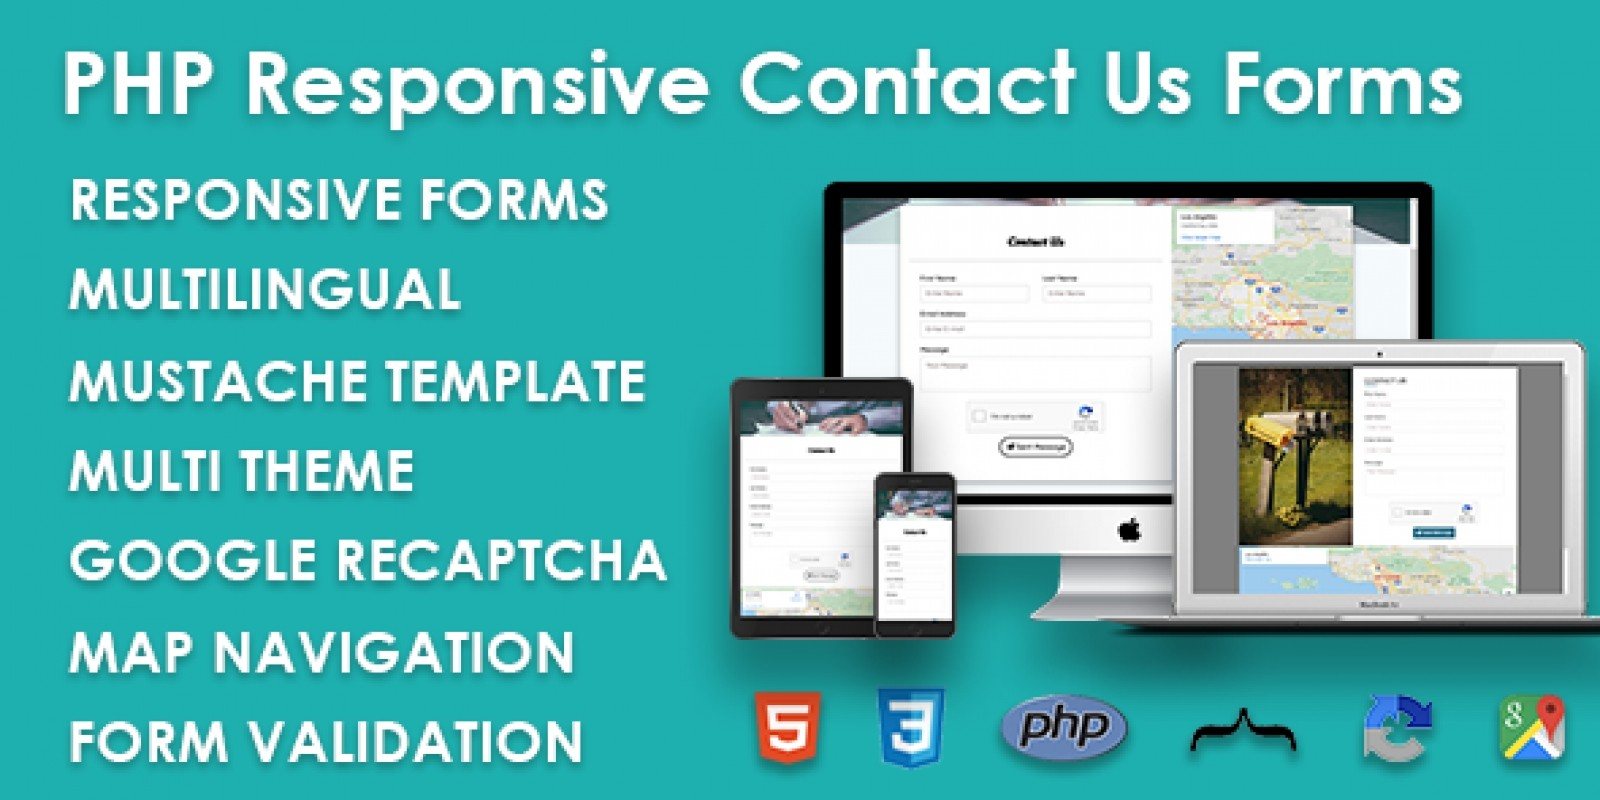 PHP Responsive Contact Us Forms